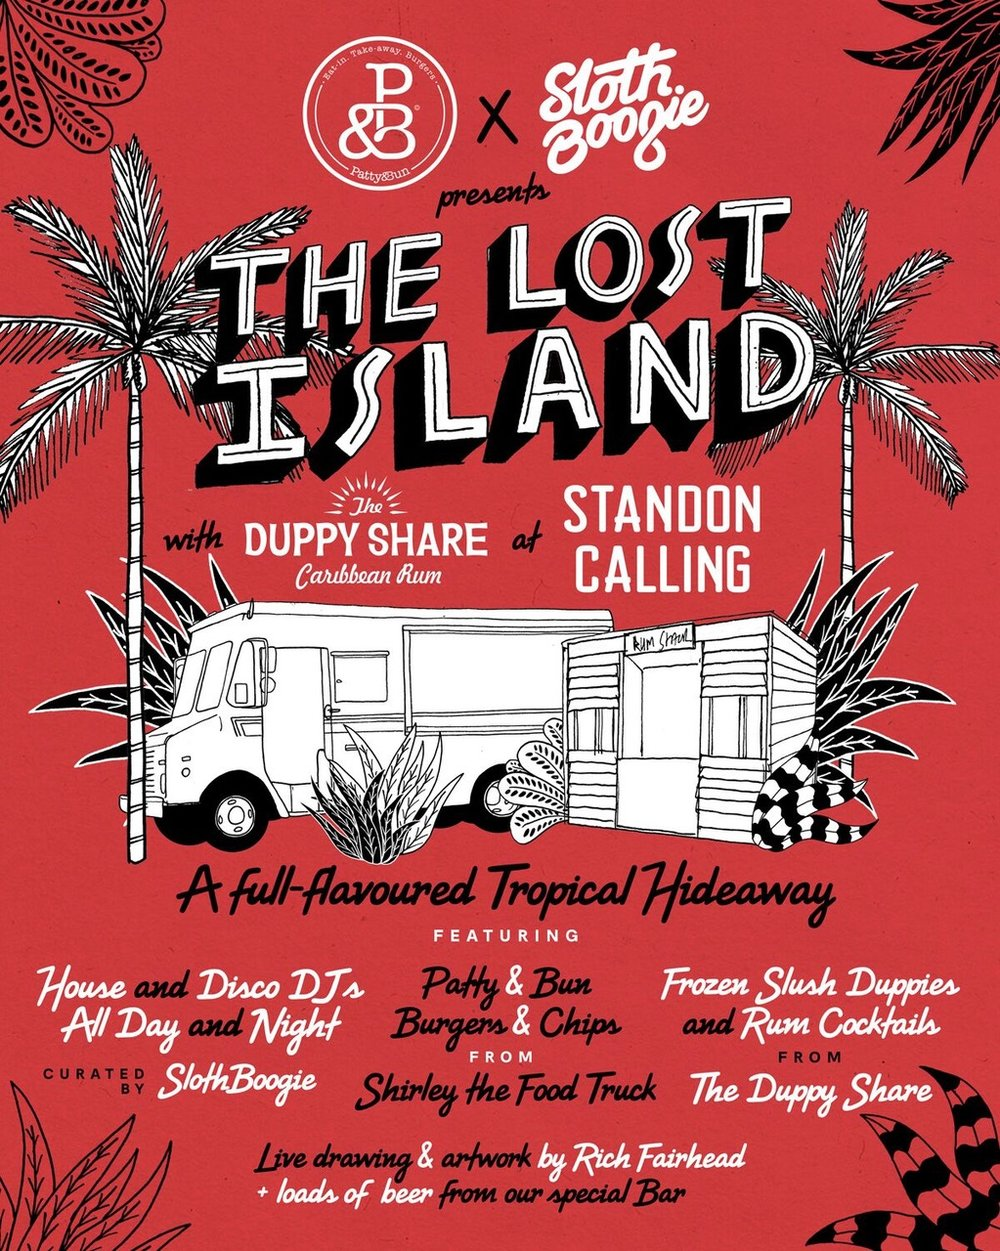 Standon-Calling-Party-Flyer-Insta-V2_preview.jpeg